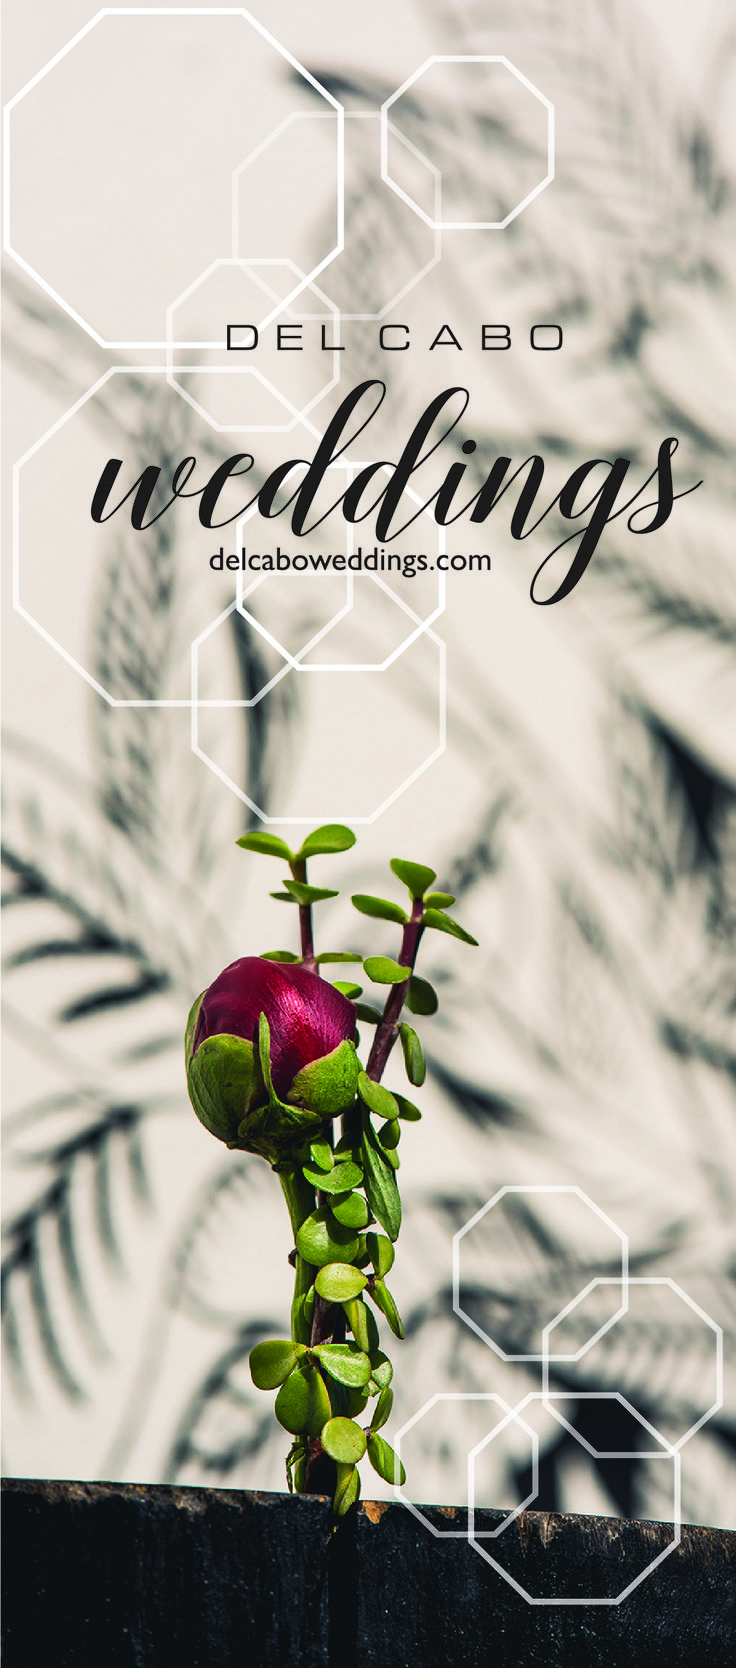 Modern flowers ideas for your beautiful wedding in Cabo! Make your destination wedding theme unforgettable! Click on this image and visit our website!